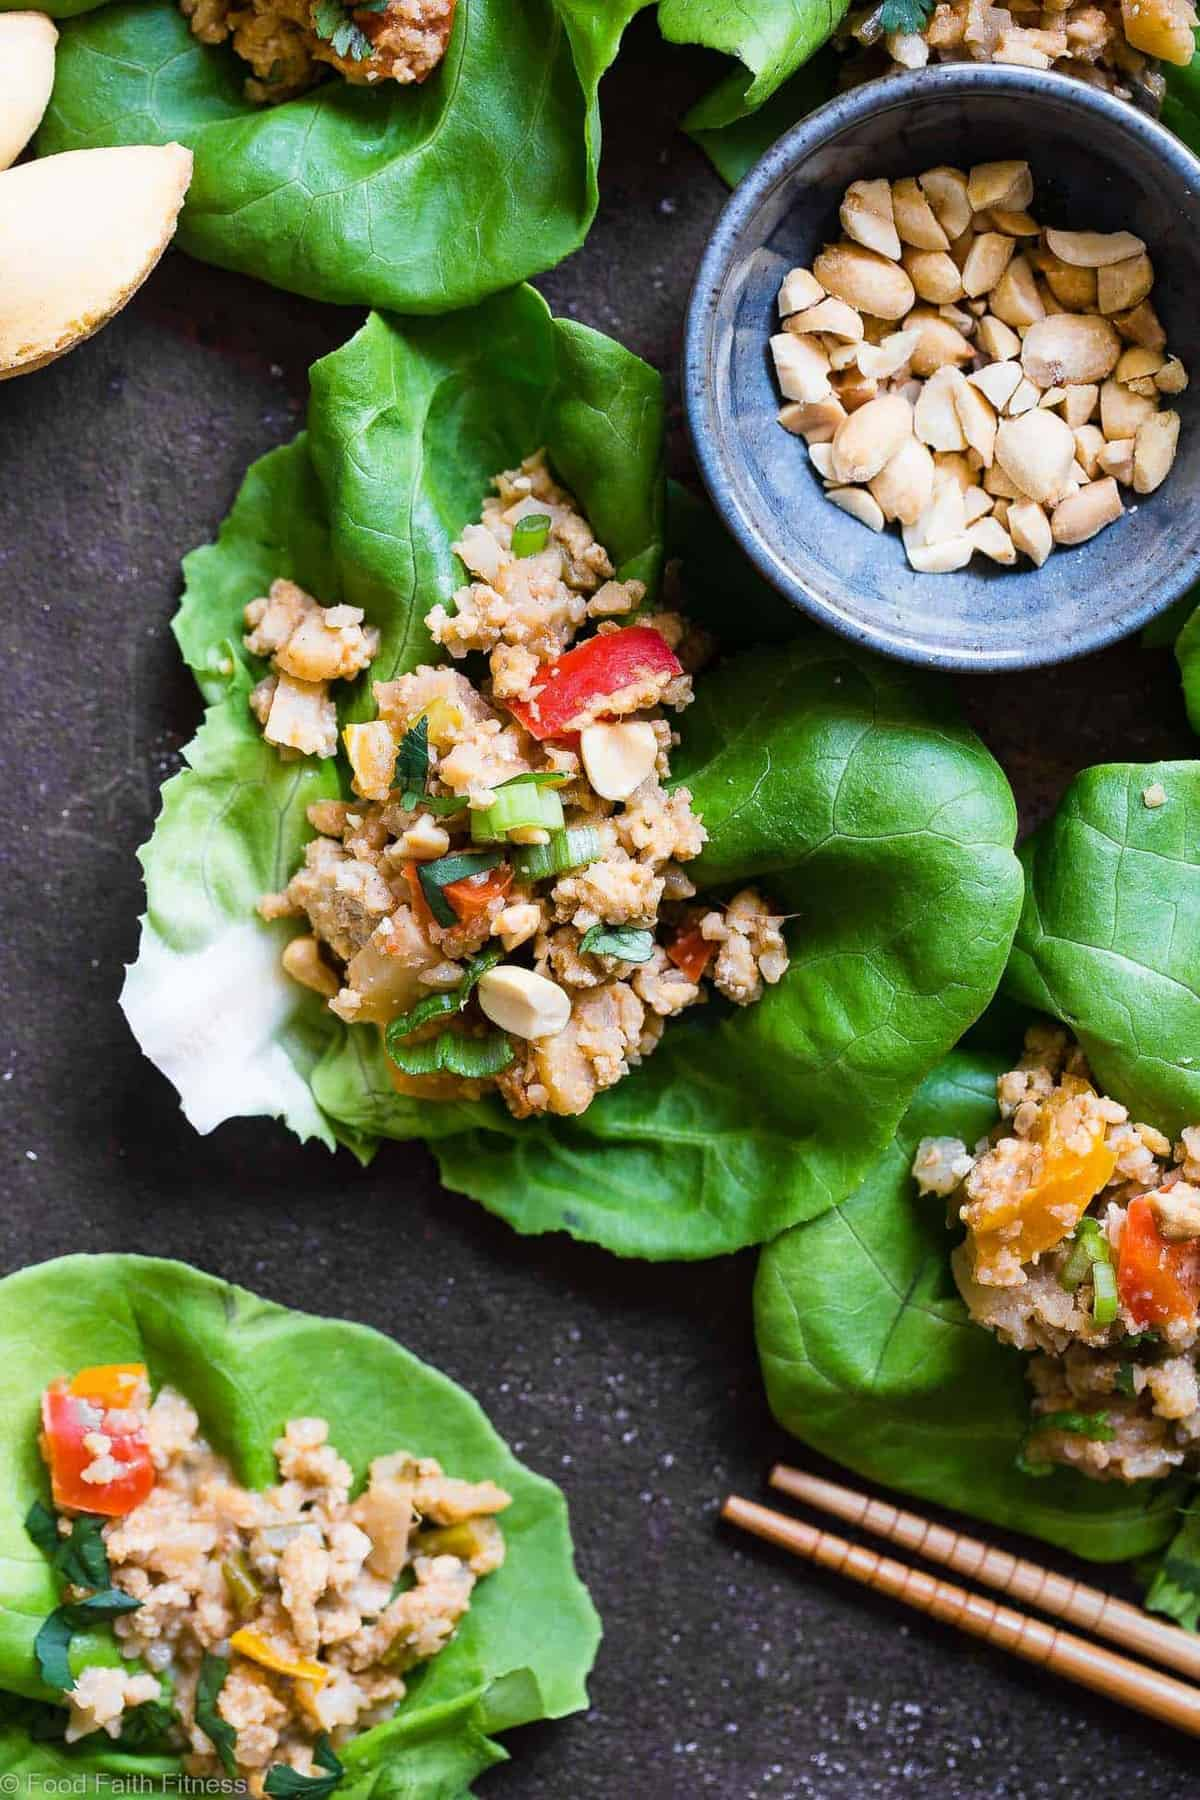 Slow Cooker Asian Chicken Lettuce Wraps - These healthy Lettuce Wraps couldn't be easier! The slow cooker does all the work for you and they're secretly veggie packed and paleo, gluten free, whole30 and under 350 calories! | #Foodfaithfitness | #Glutenfree #Healthy #Paleo #Whole30 #SlowCooker